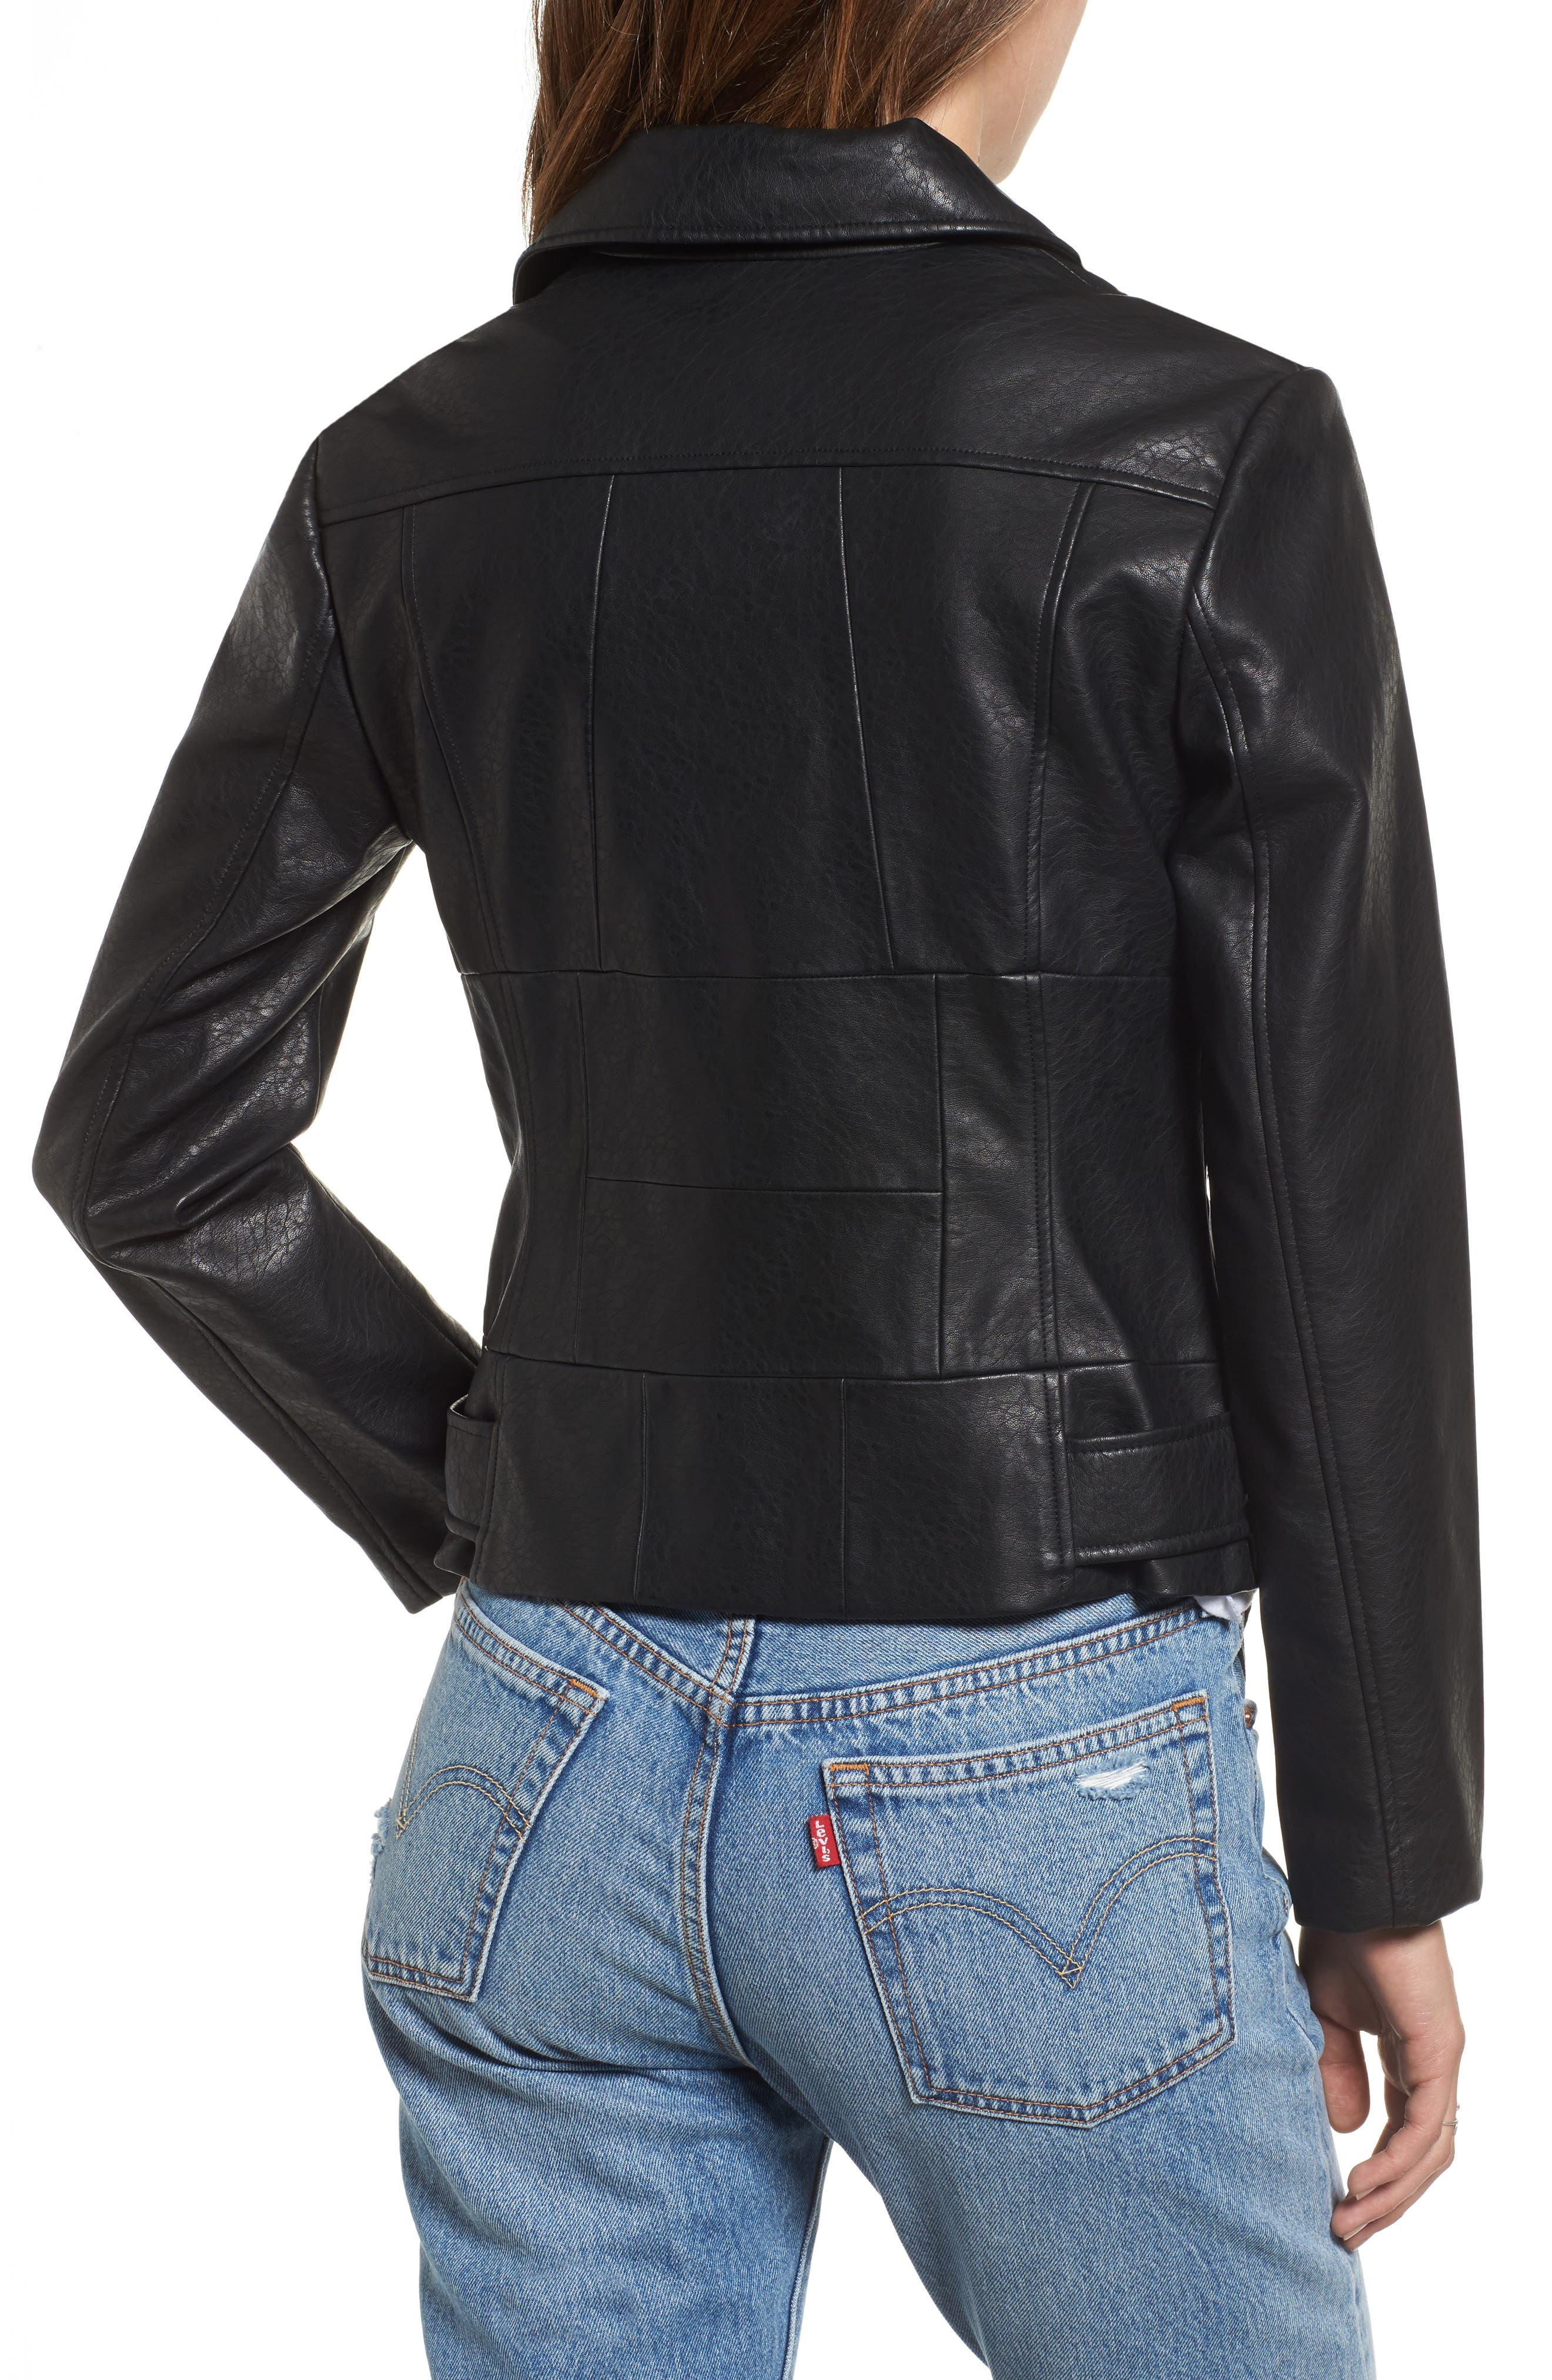 Maria Washed Faux Leather Patchwork Jacket,                             Alternate thumbnail 2, color,                             001